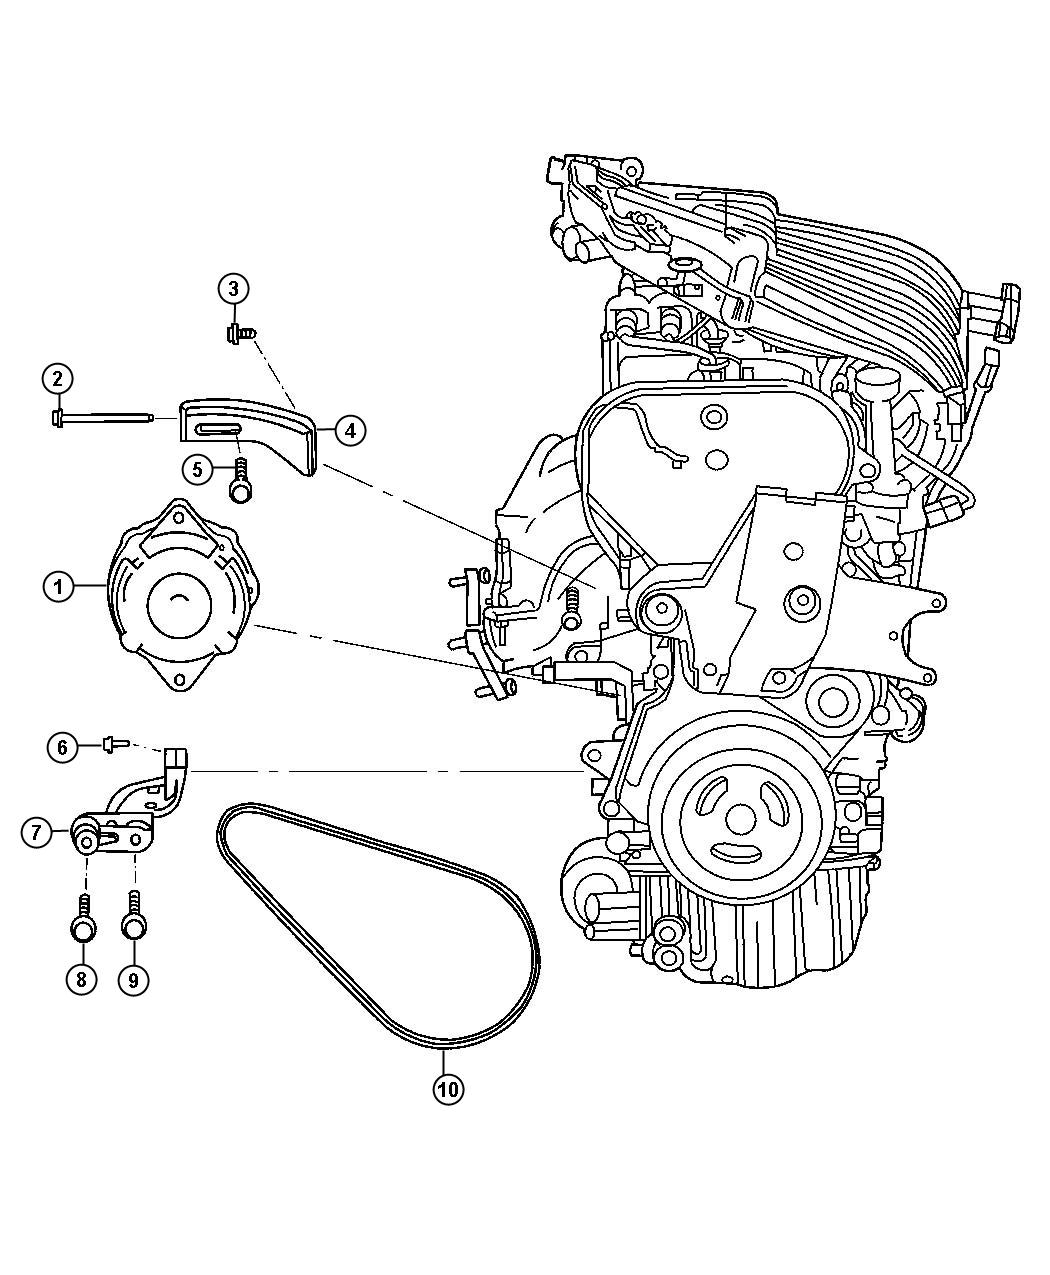 Highway 22 Wiring Harness Auto Electrical Diagram American Autowire